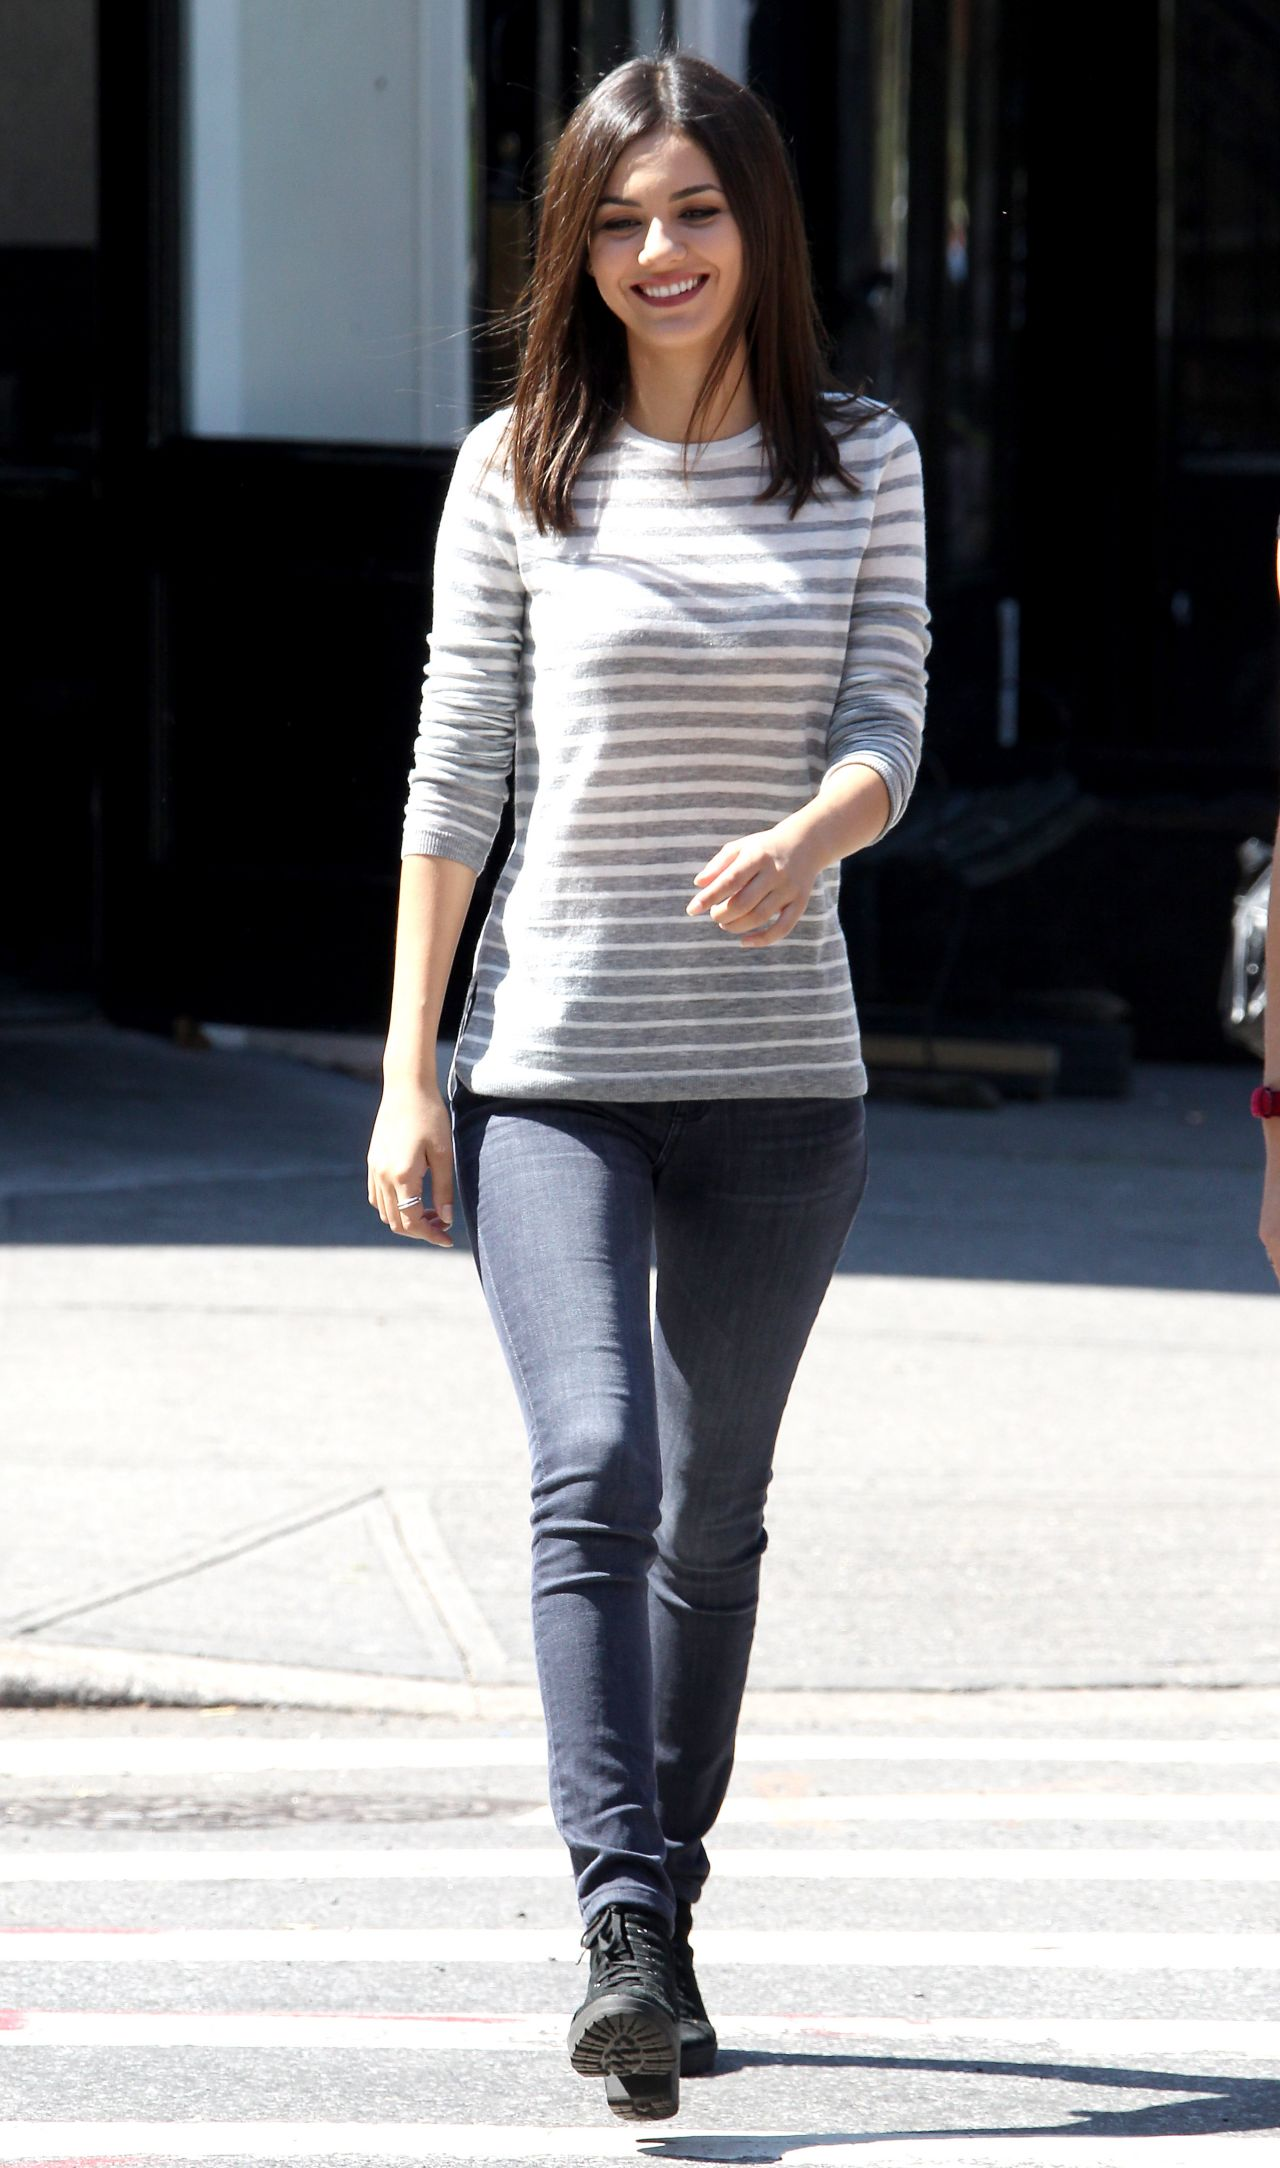 Victoria Justice – 'Eye Candy' Set Photos , Brooklyn September 2014